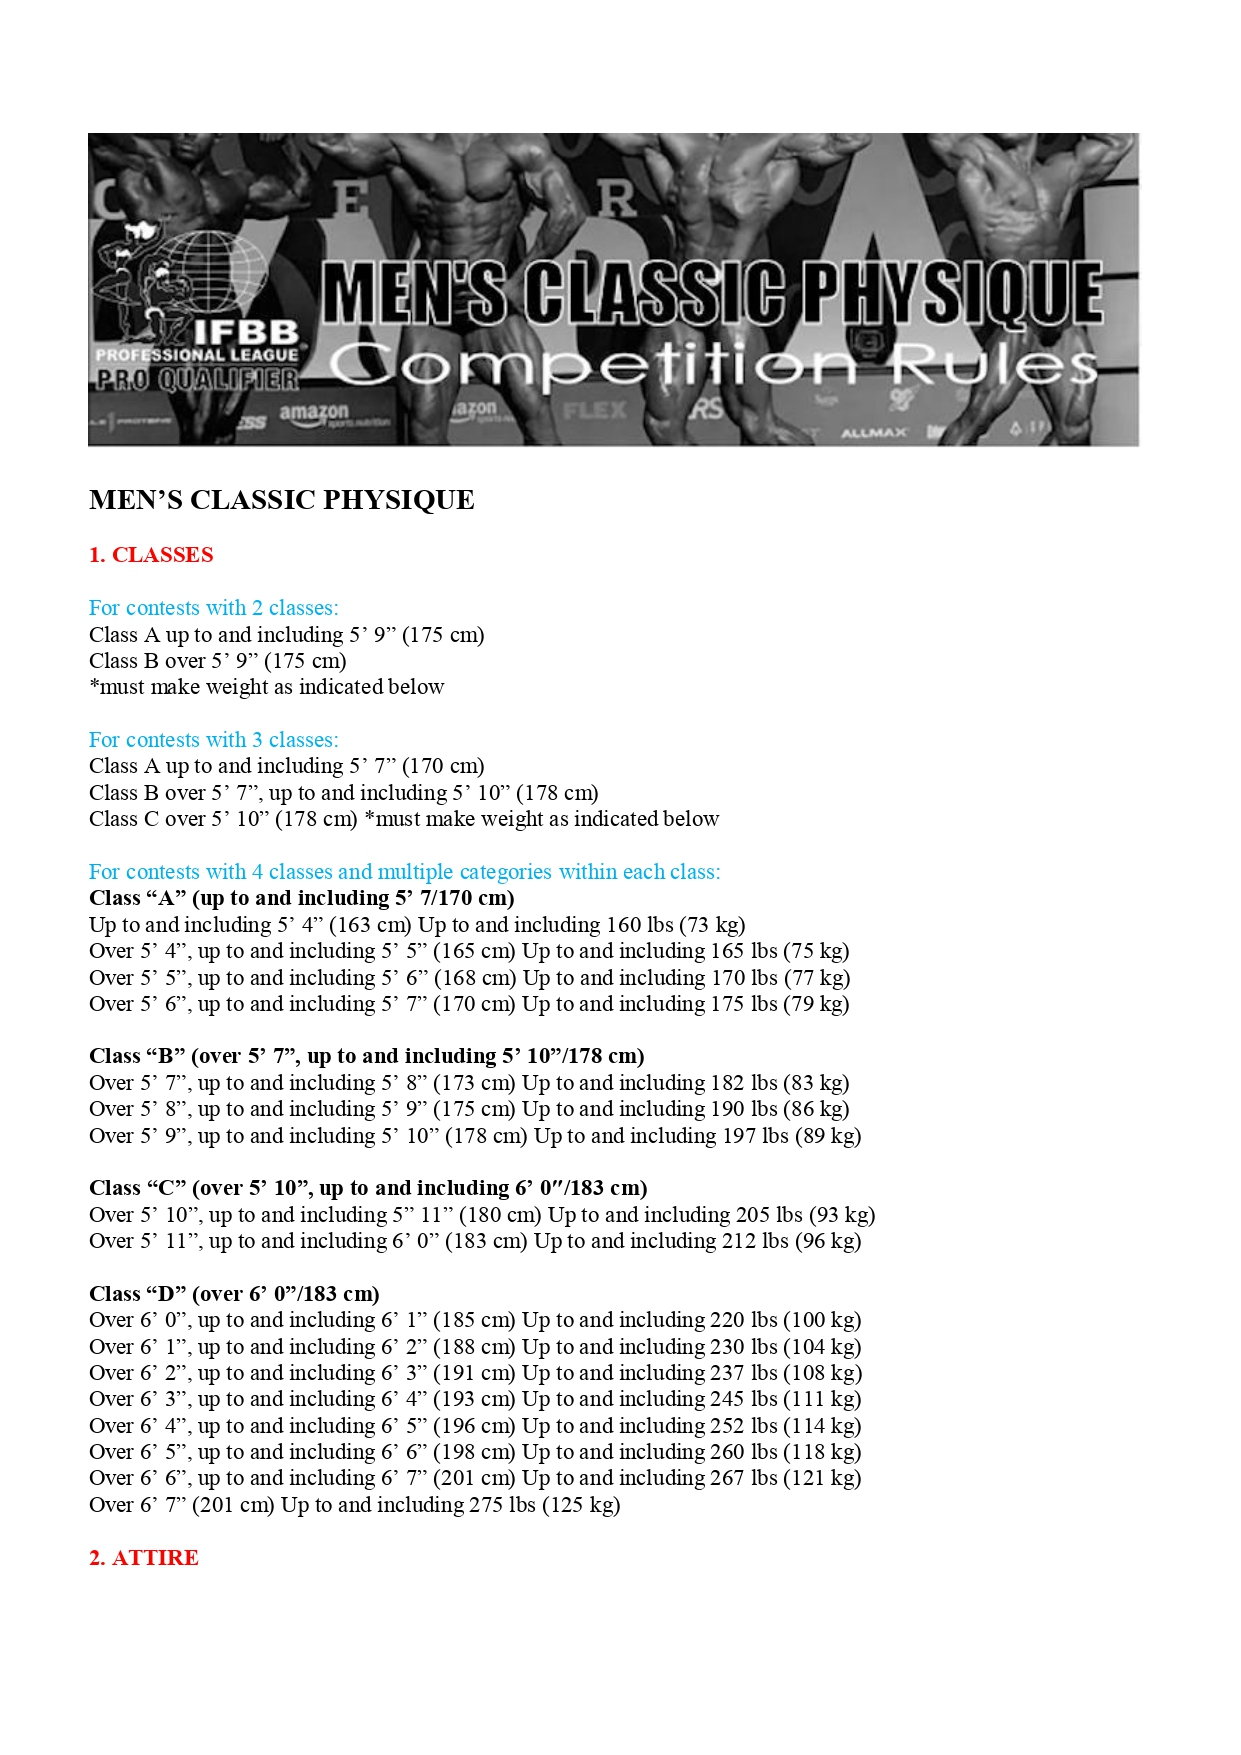 IFBB-rules_page-0004